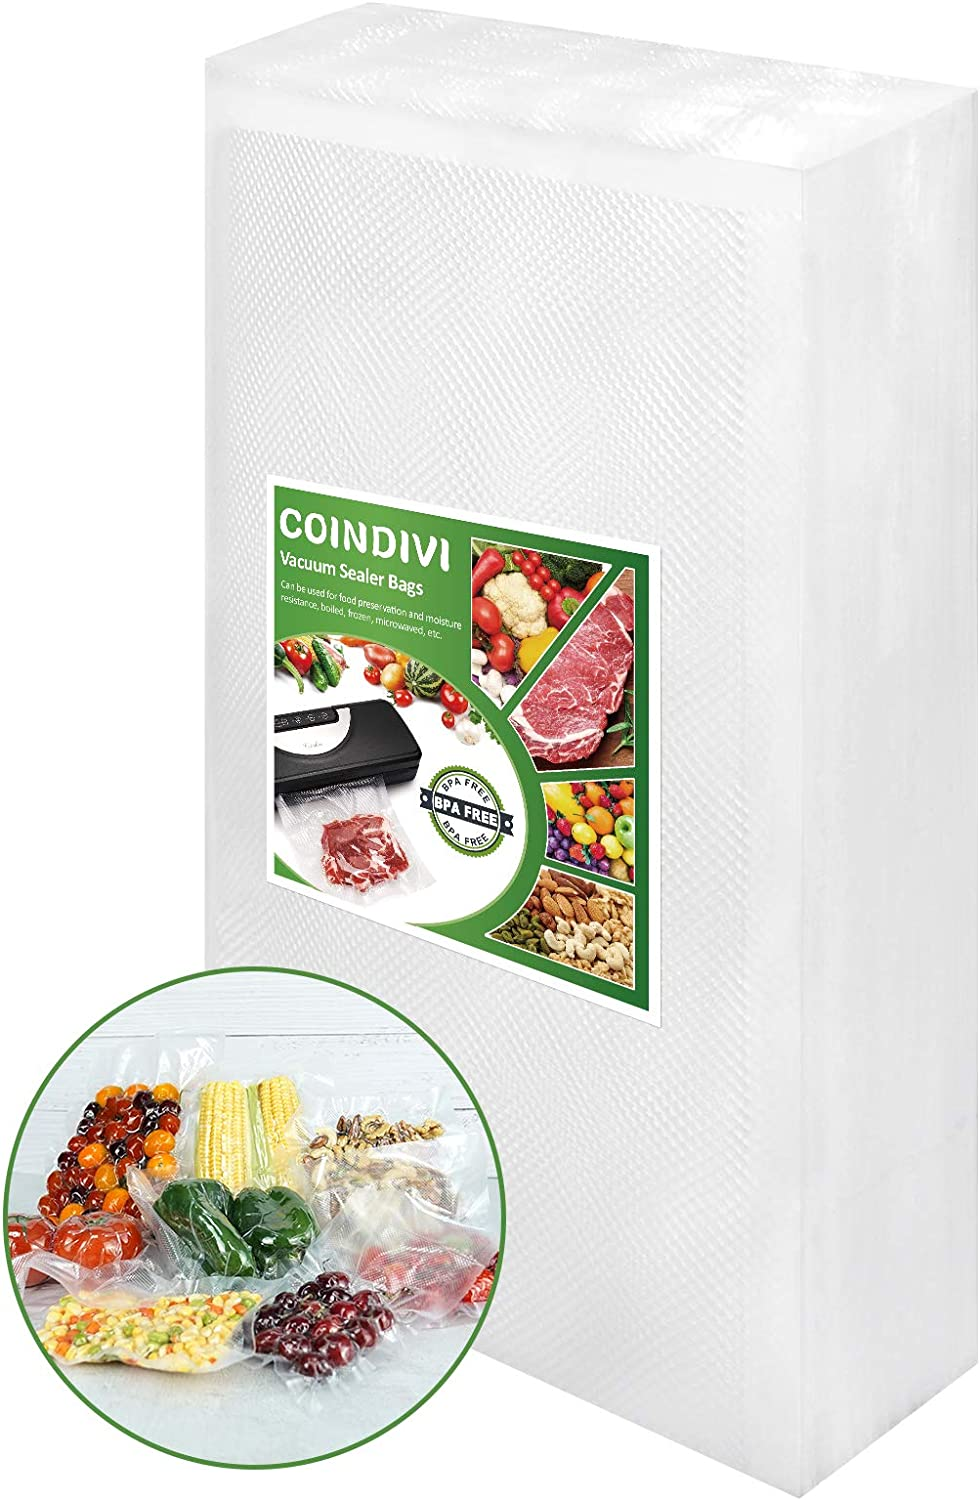 Vacuum Sealer Bags for Food Saver, 100Pcs 7.8''x 11.8'' Reusable Seal A Meal Bags With BPA Free, Coindivi Vacuum Bags Great For Sous Vide,freezer,Storage, Keep Meat, Fruit Fresh, Pre-Cuzt Design